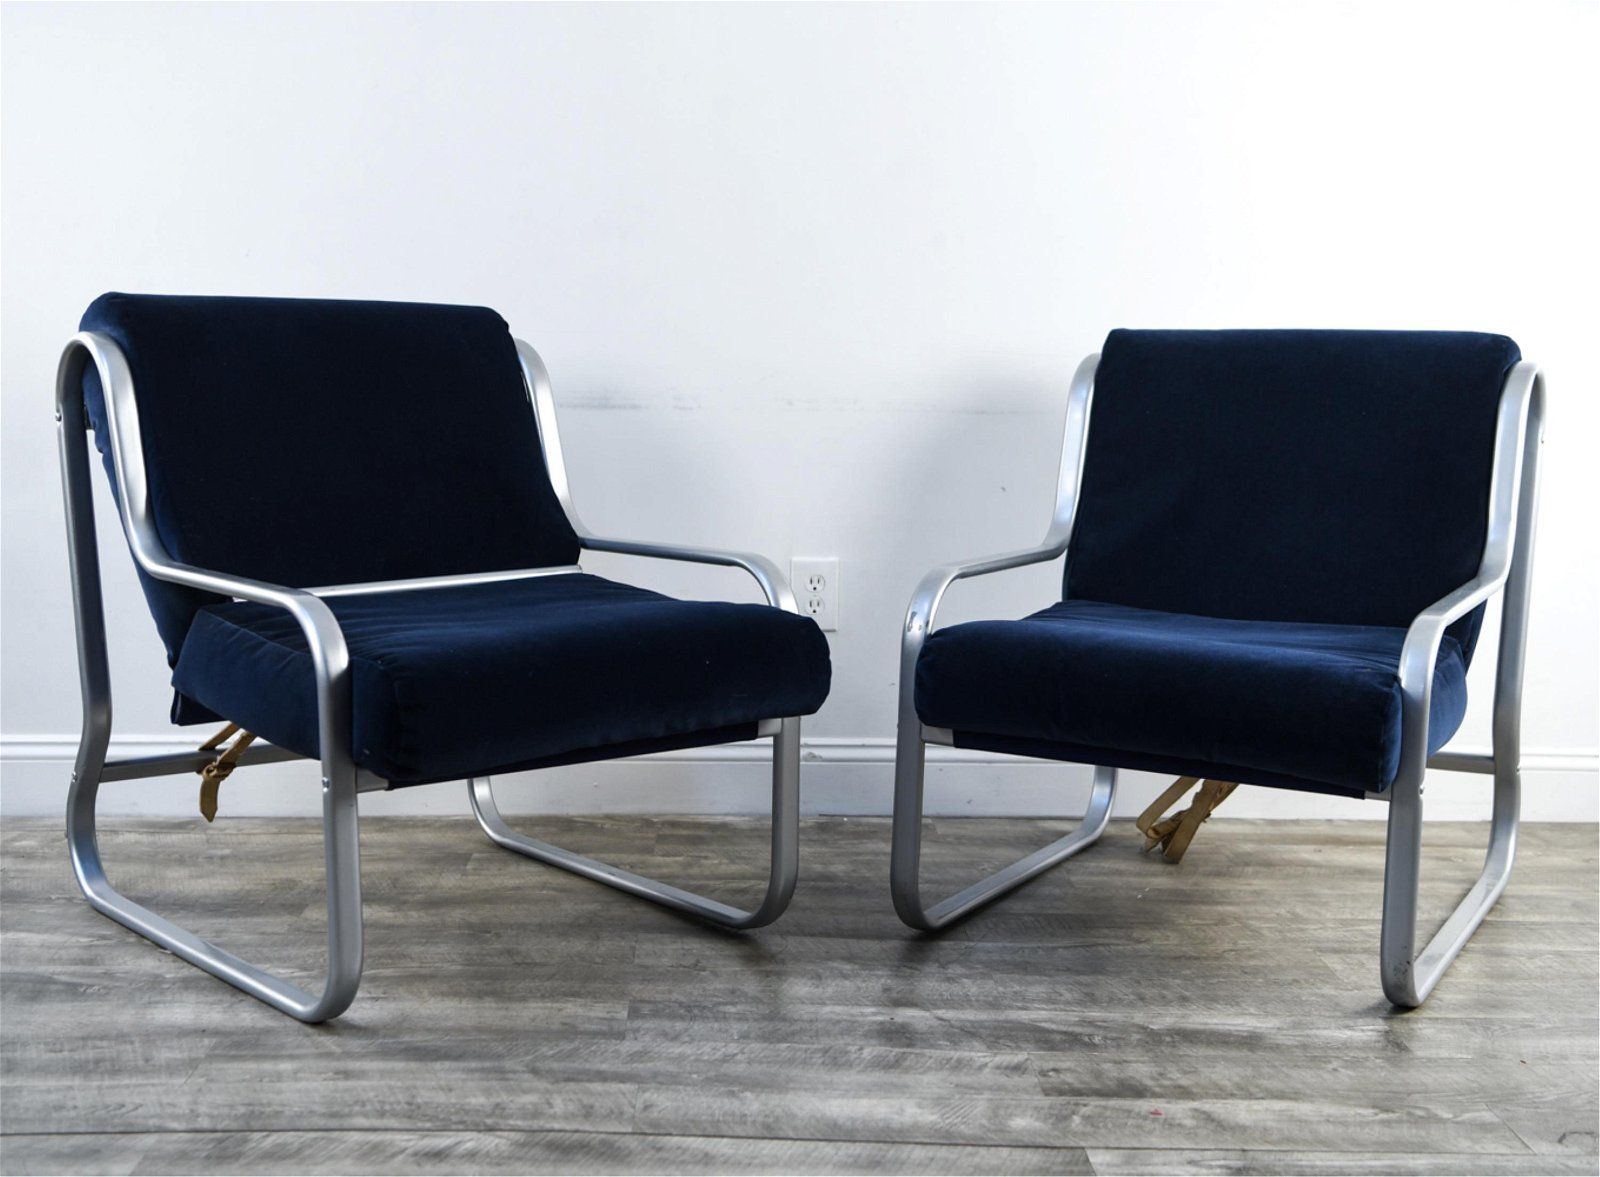 PAIR OF CHROME SLING LOUNGE CHAIRS